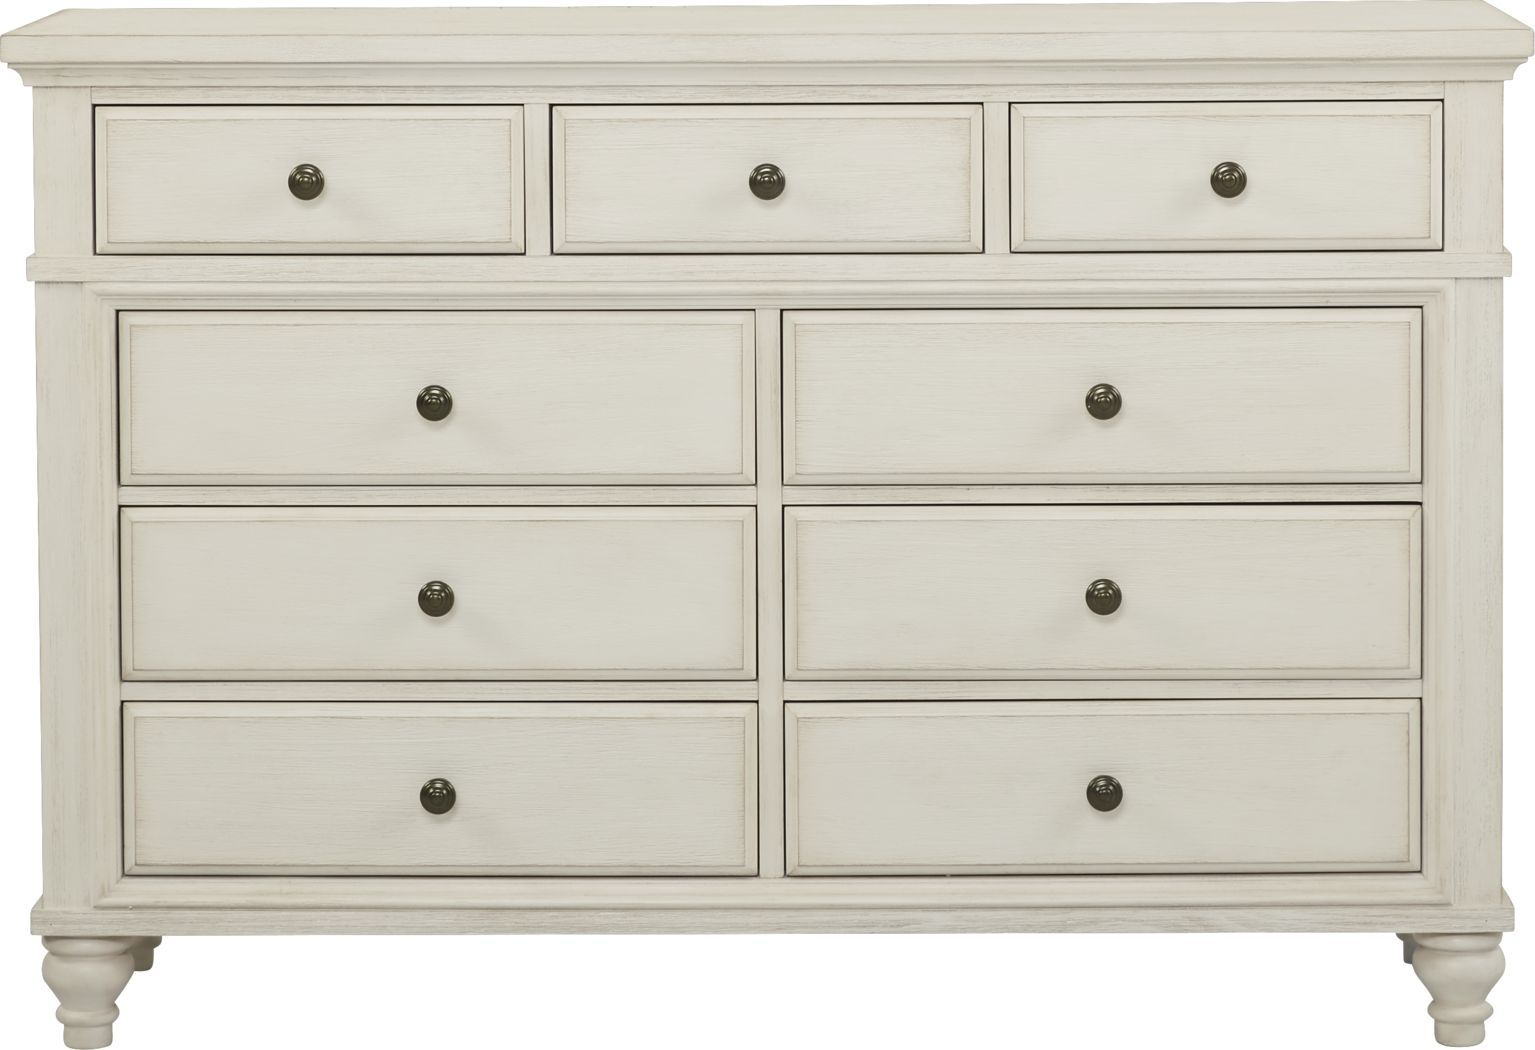 Lake Town Off White Dresser In 2021 Dressers For Sale White Dresser Rooms To Go [ 1050 x 1535 Pixel ]